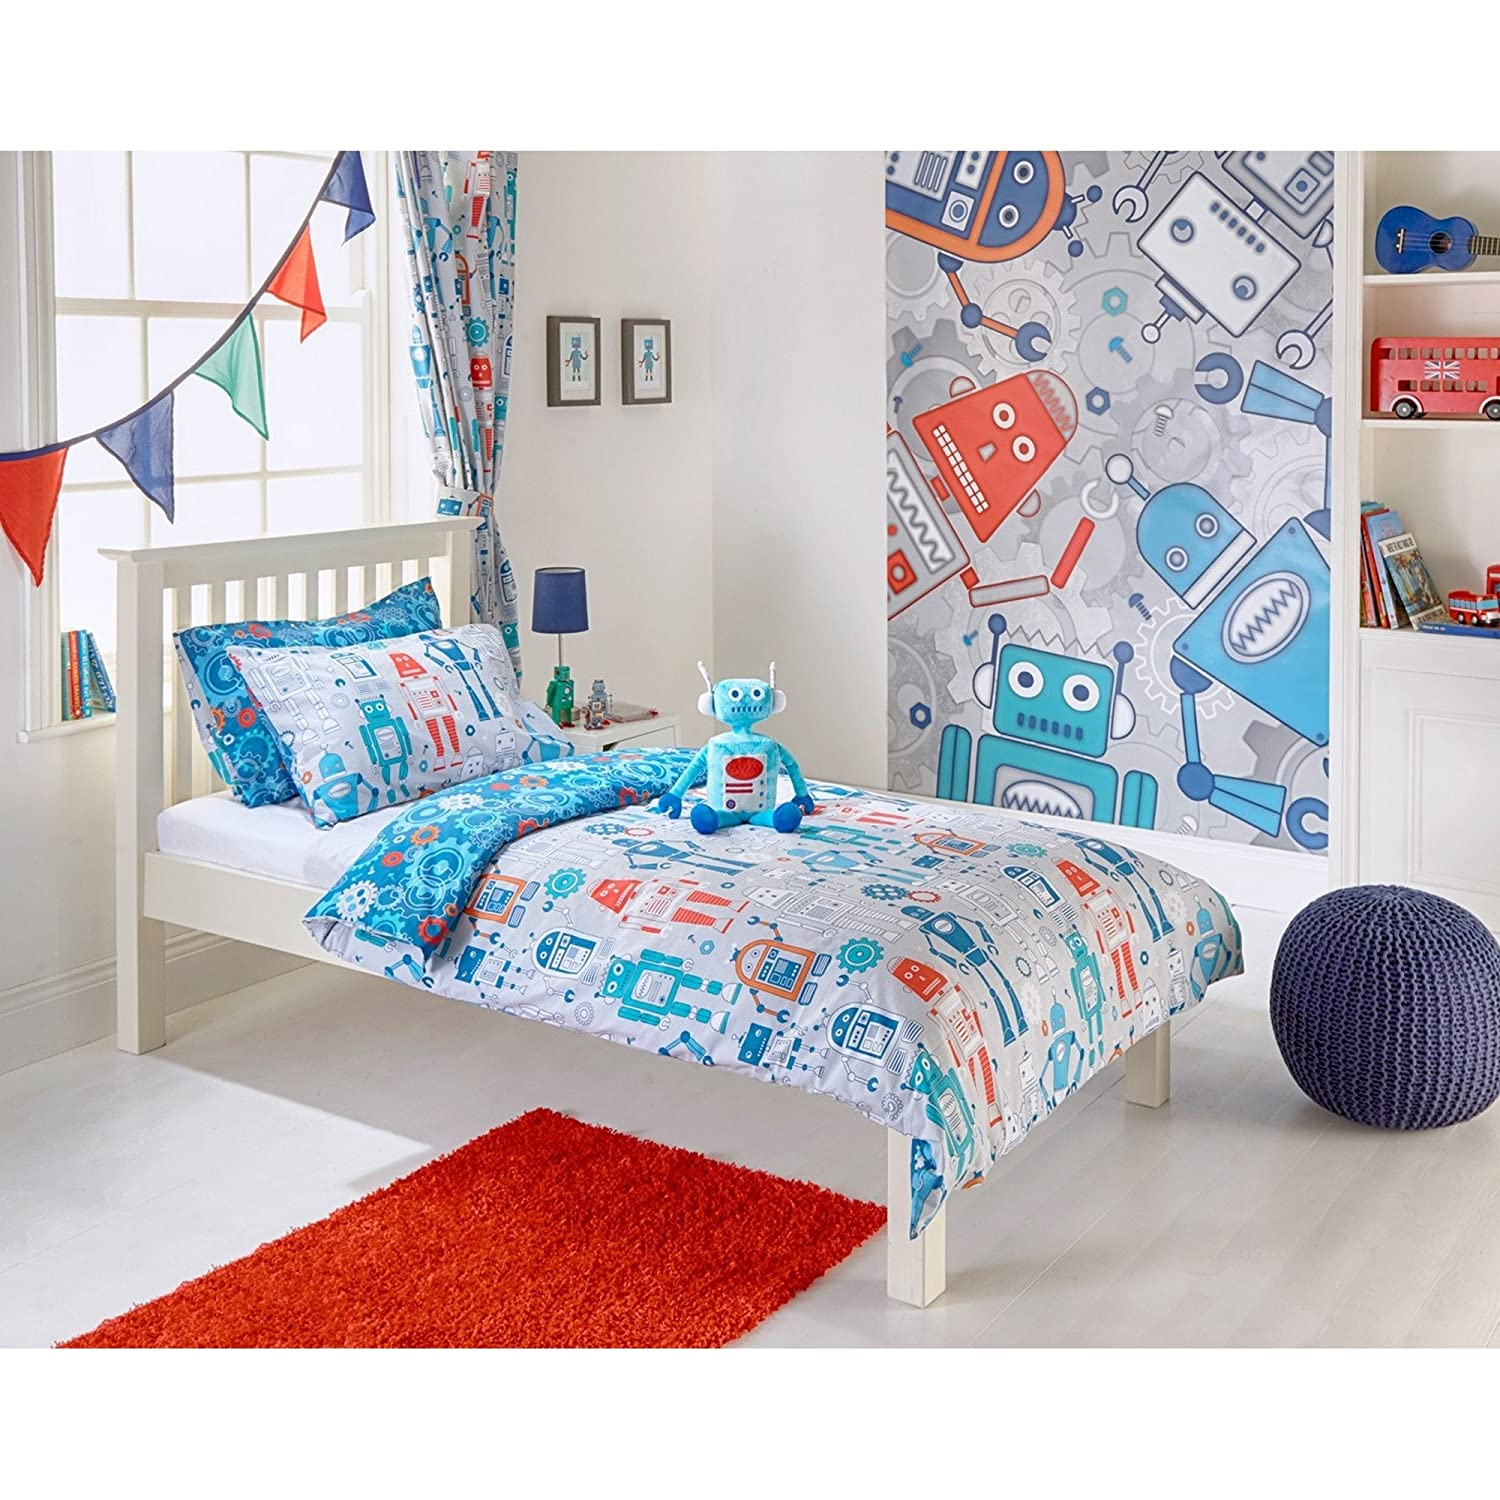 Riva Home Robot Childrens/Kids Duvet Set (Toddler (47.2 x 59in)) (Blue) UTRV1043_1